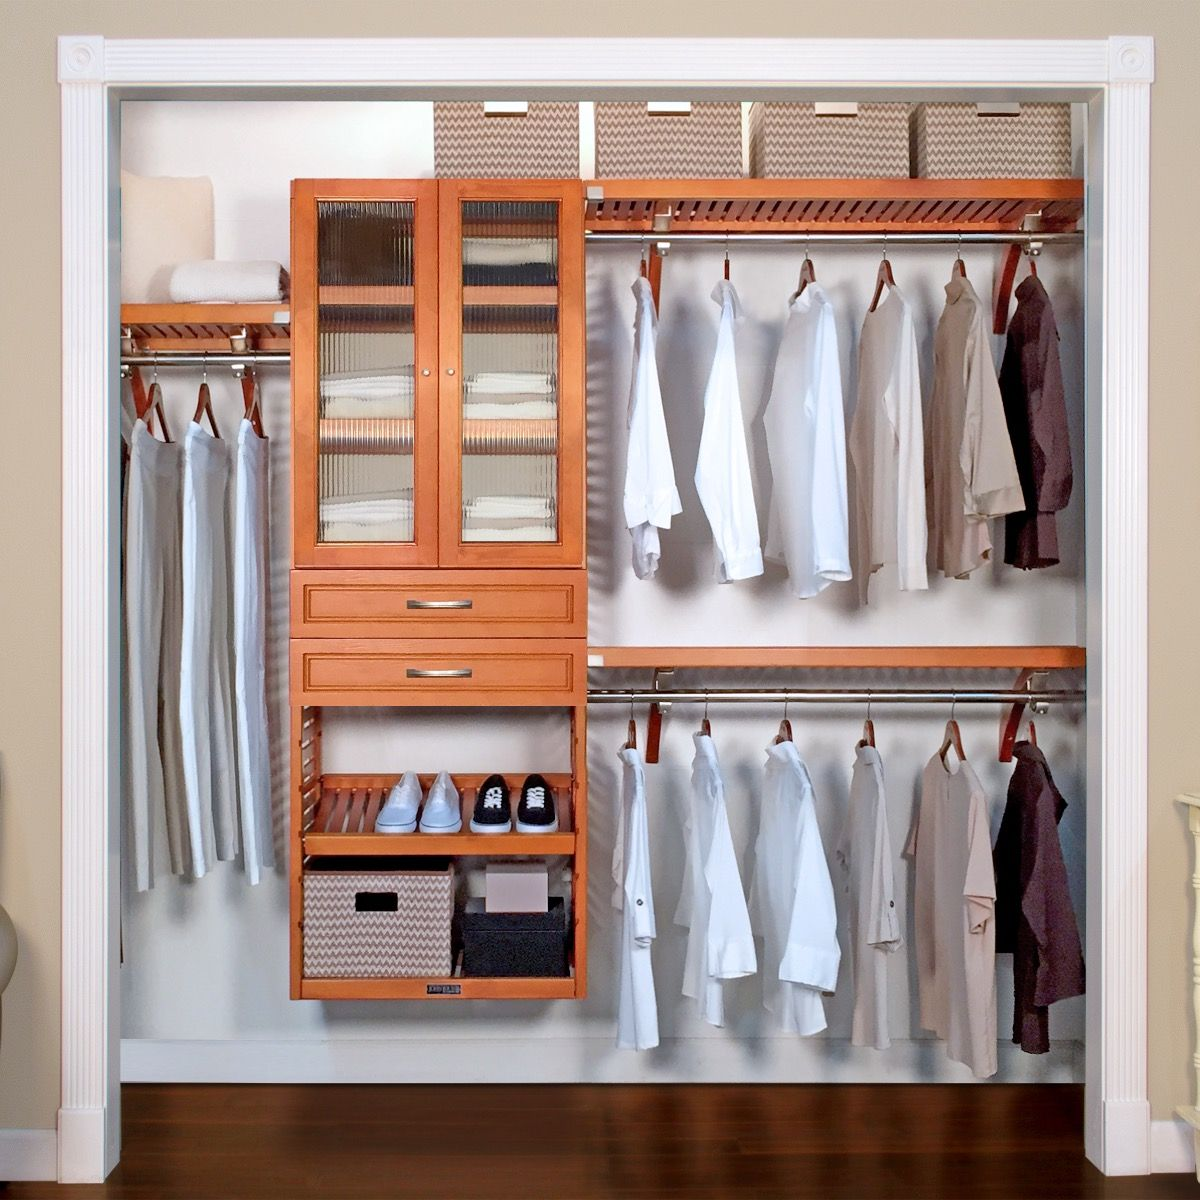 16in. Deep Woodcrest Deluxe Closet Organizer with 2 ...